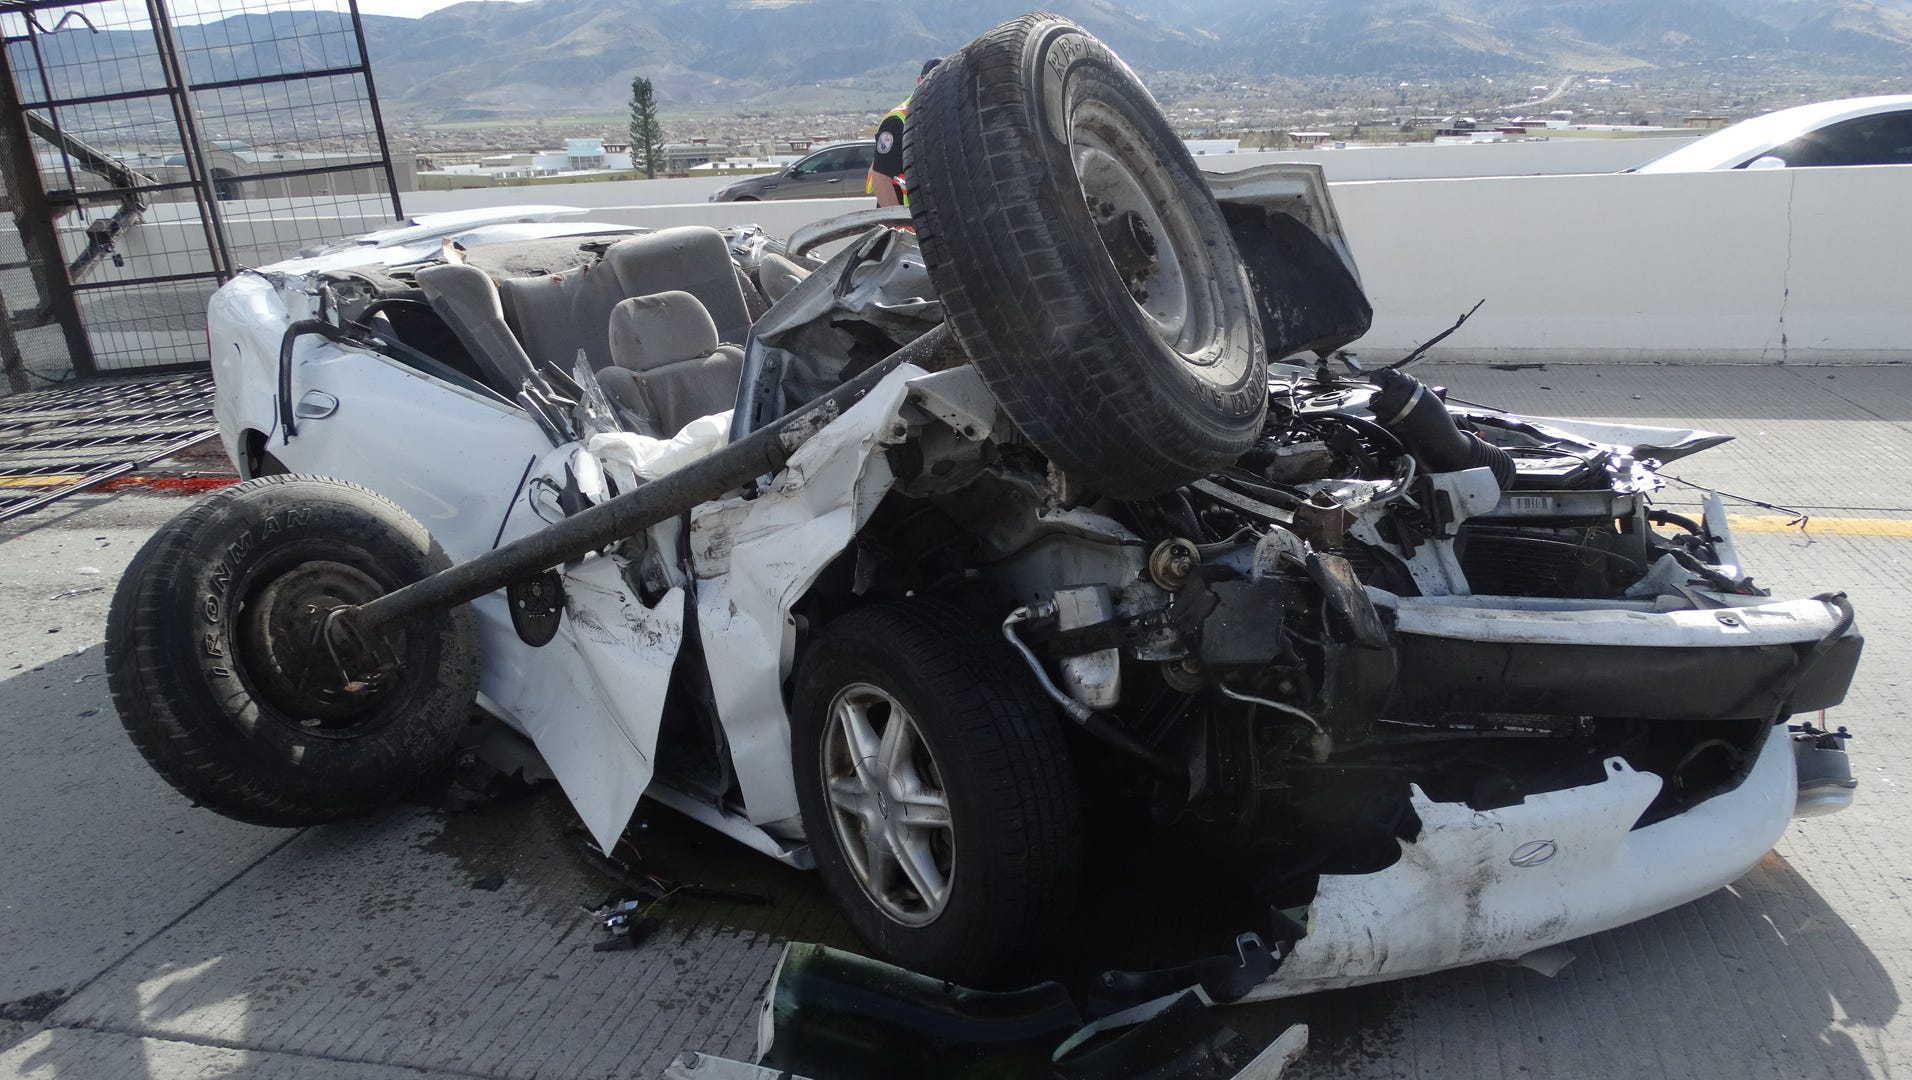 Officials ID driver killed by unhitched trailer on I-580